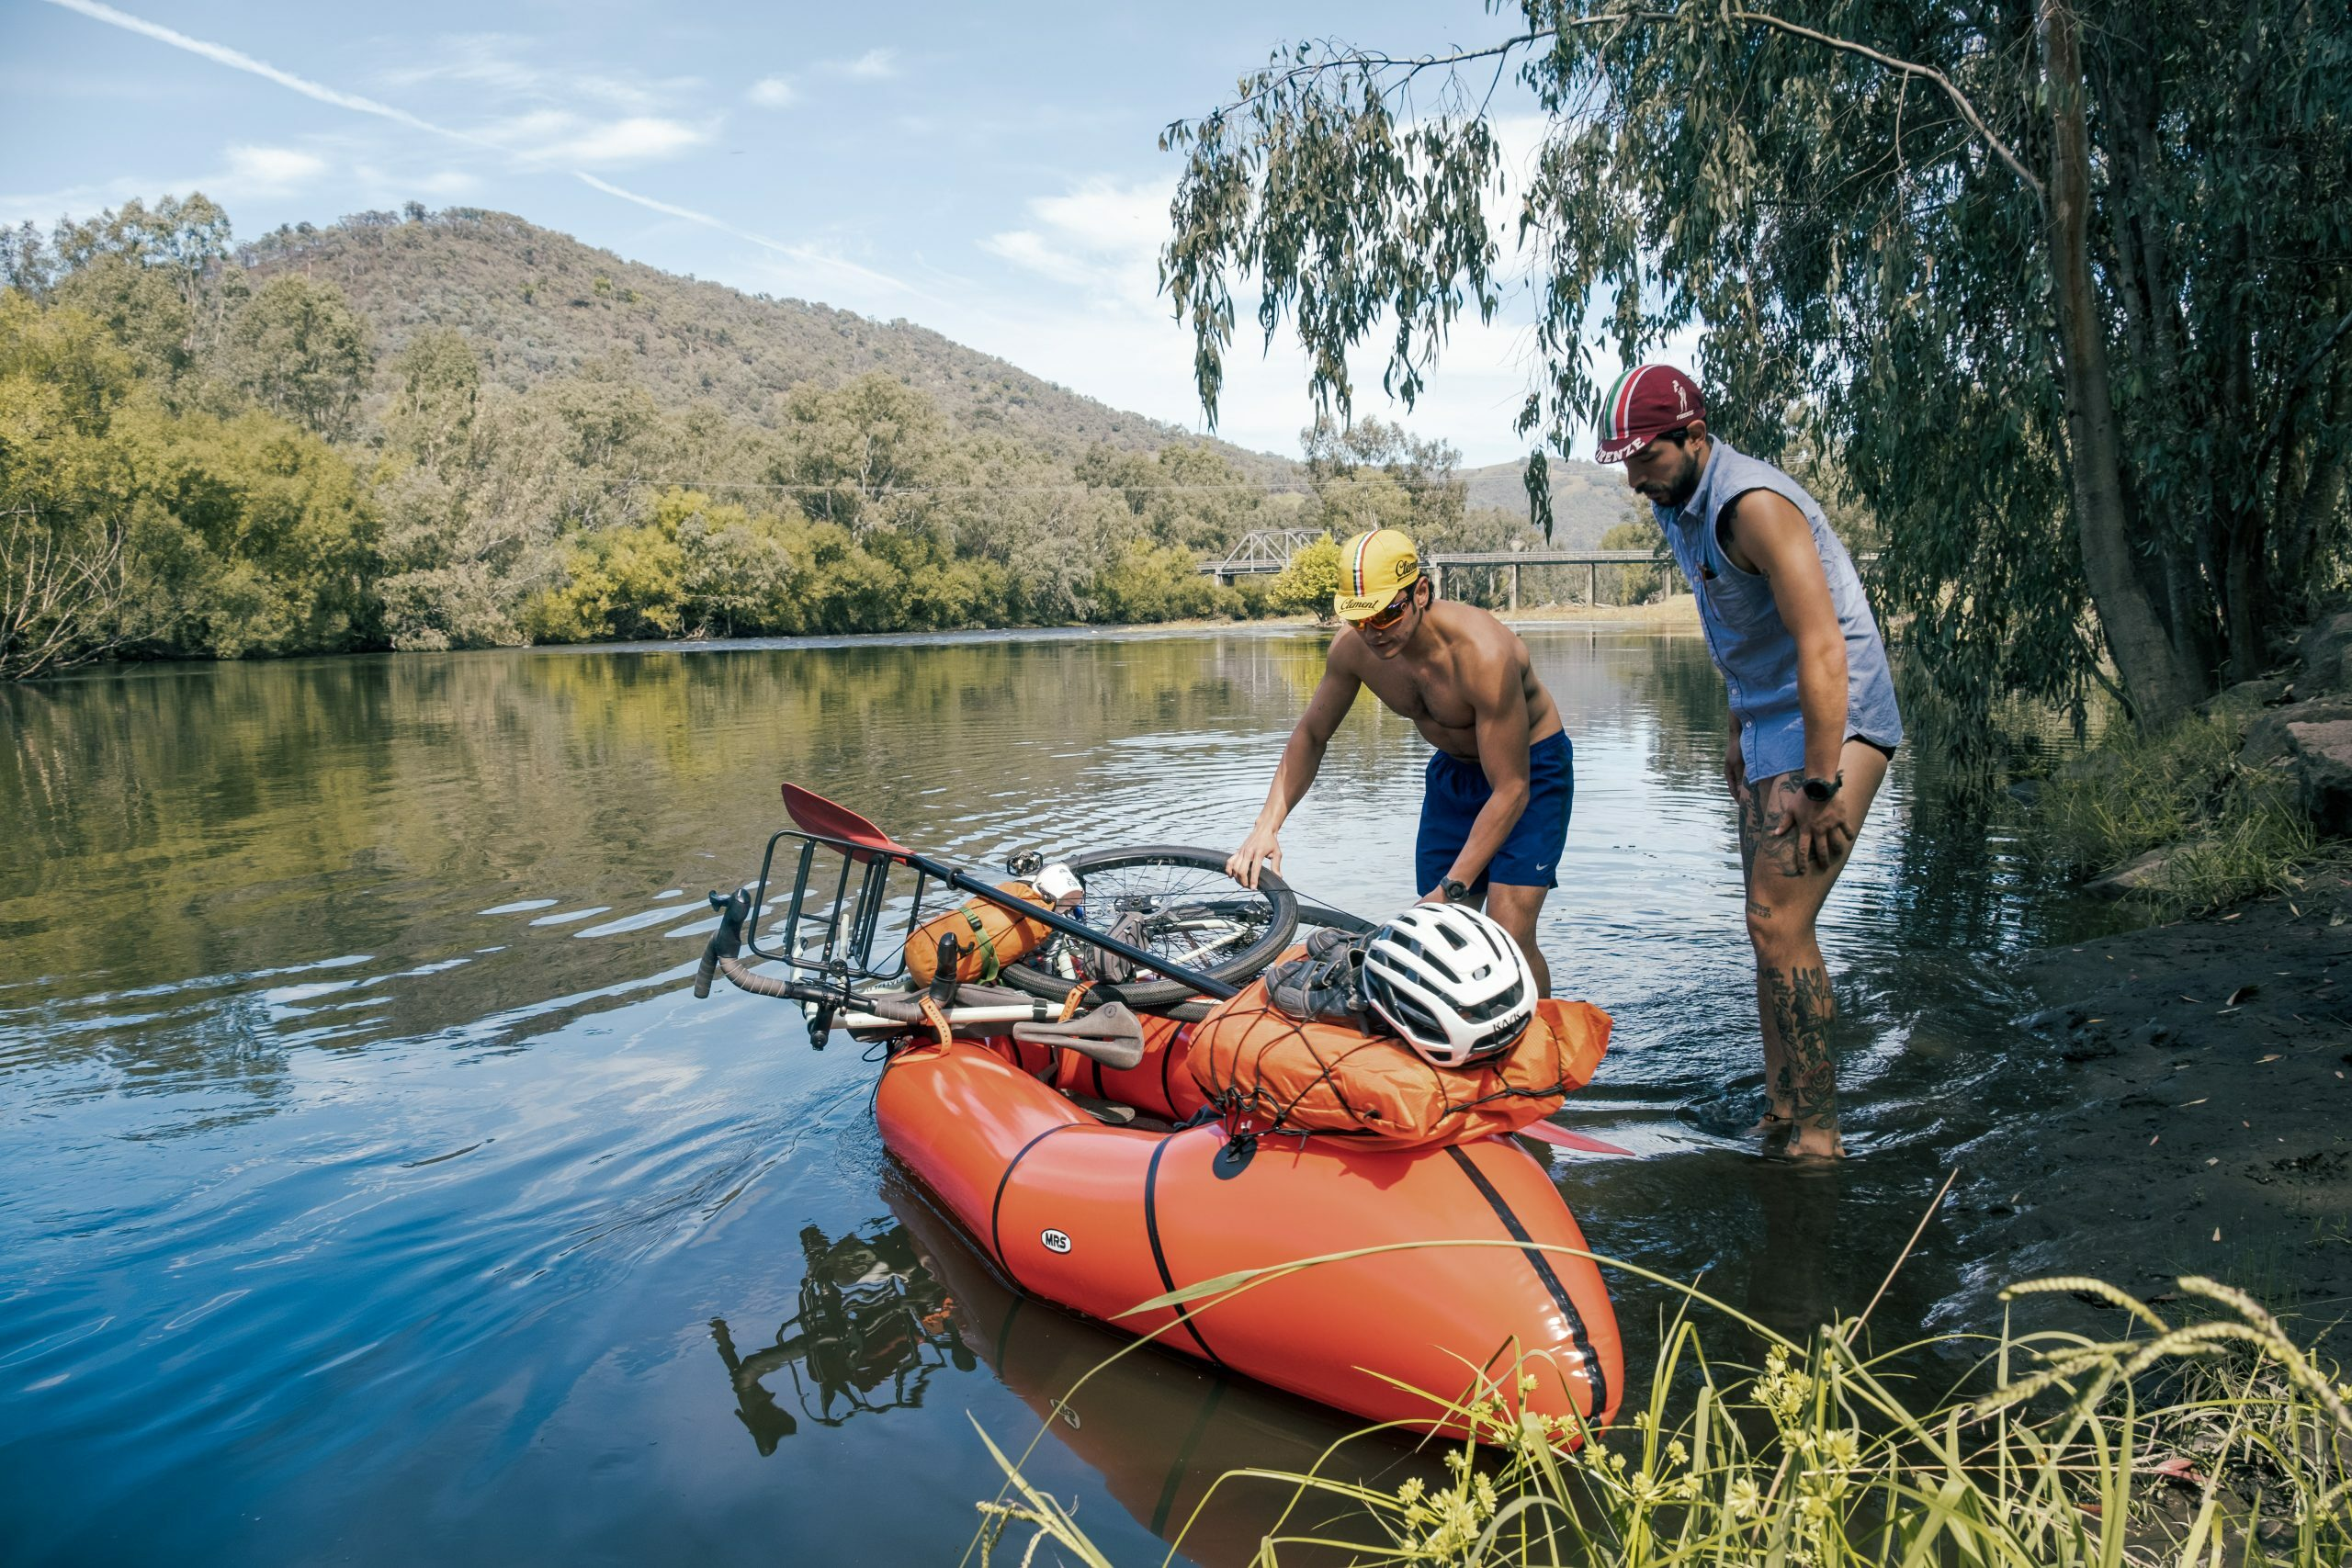 Loading up a packraft on the murray river